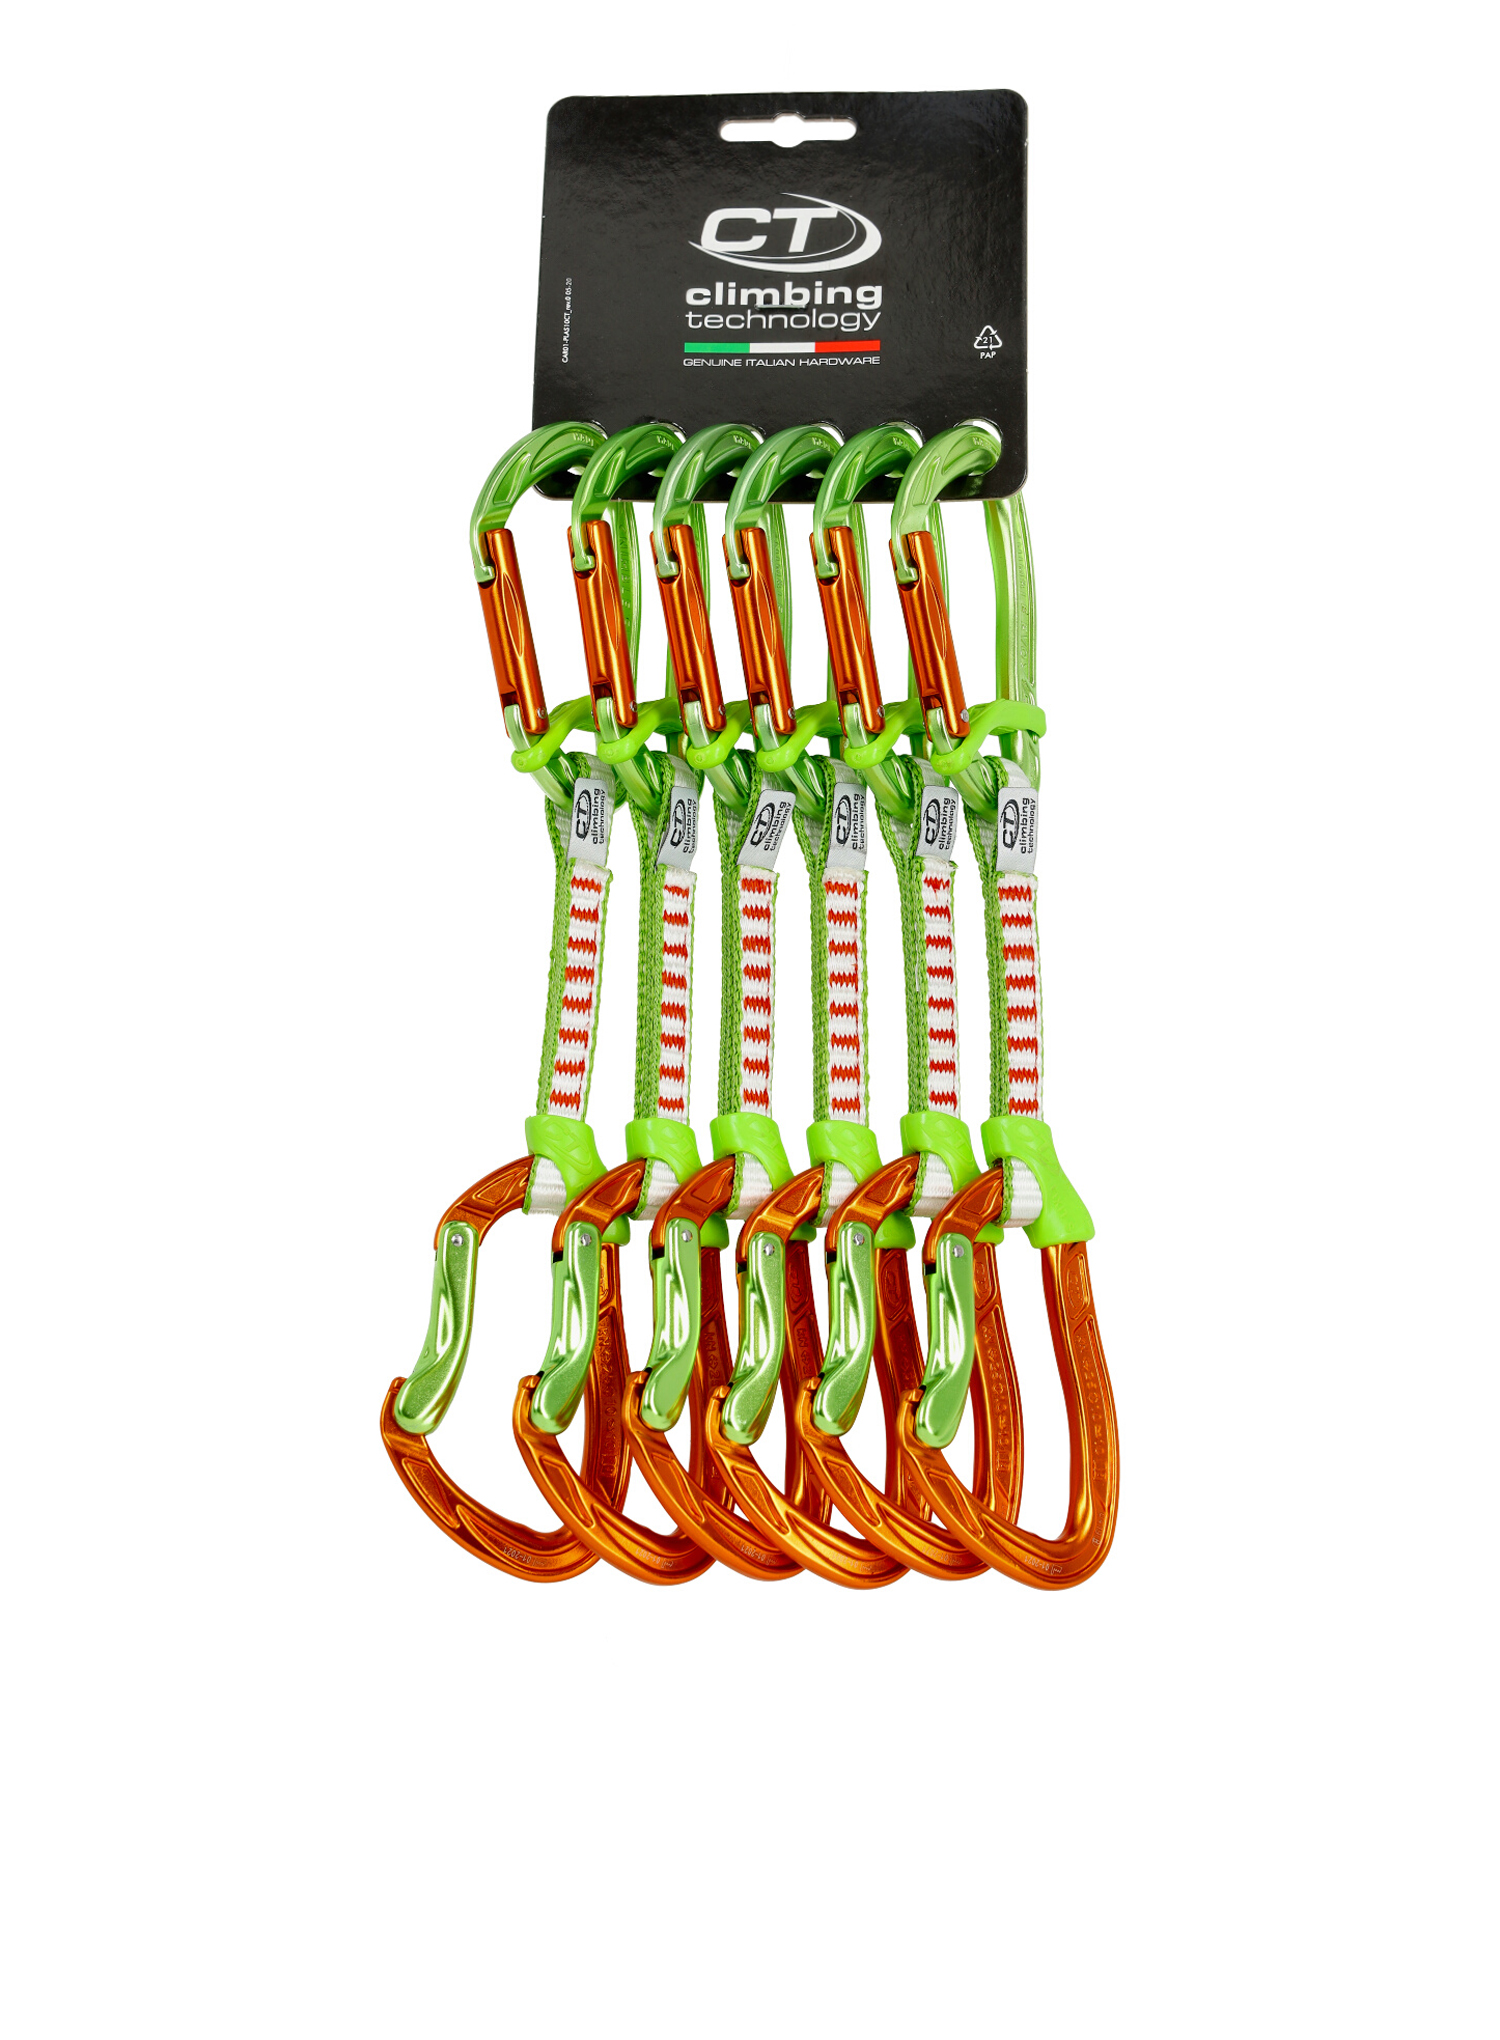 Zestaw Climbing Technology Nimble Fixbar Set DY 12cm x6 - orange/green - zdjęcie nr. 1